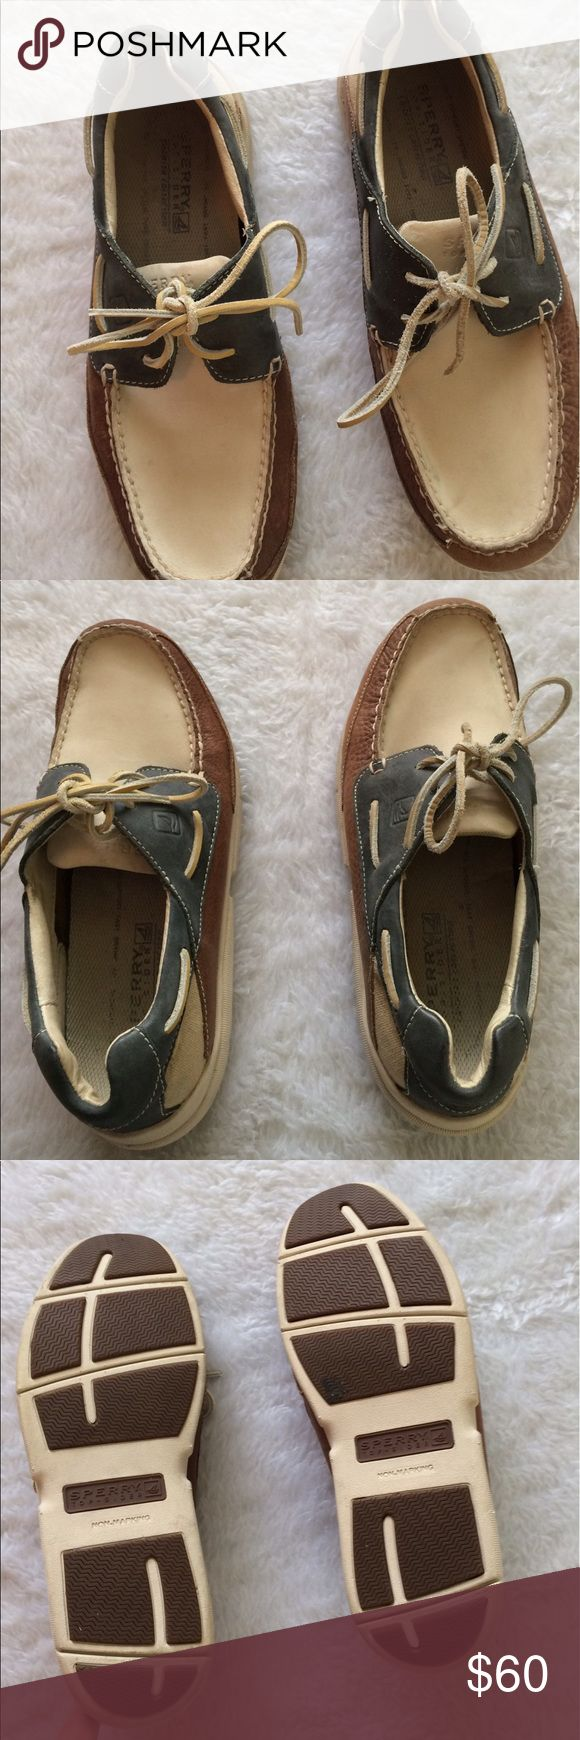 Mens Sperry  leather topsiders  tricolor 🎉Gently used some marks 🎉Tan cream & bluish grey🎉Ask questions for measurements or additional photos🎉No trades or other apps🎉Ships next business day unless noted in my closet🎉Bundle for discount Sperry Top-Sider Shoes Boat Shoes